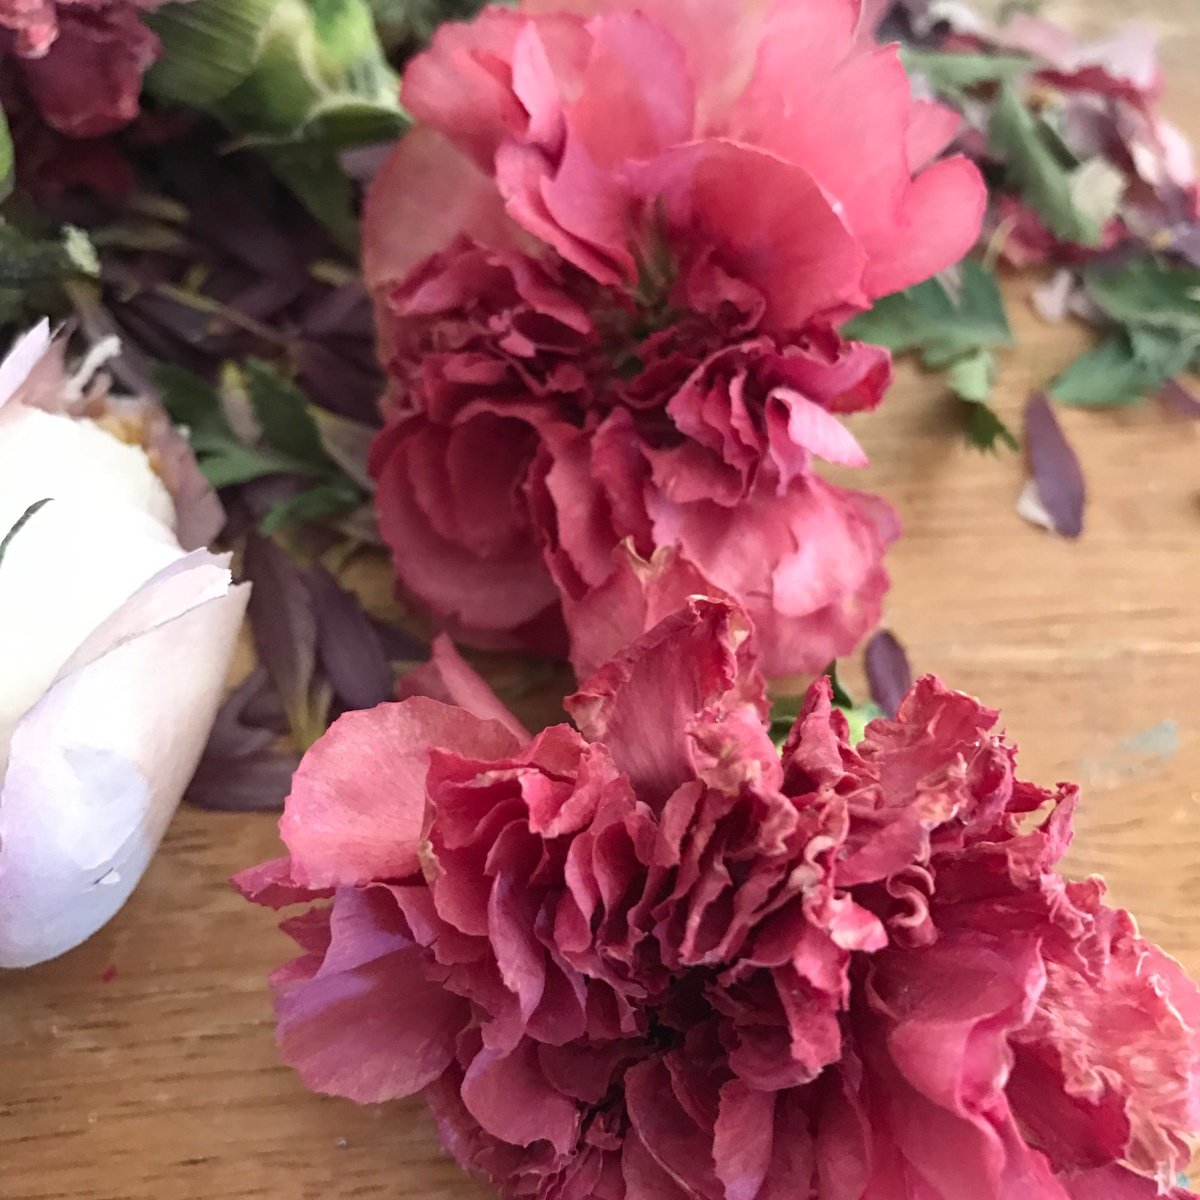 Preserving Grandma's Flowers: The Unveiling